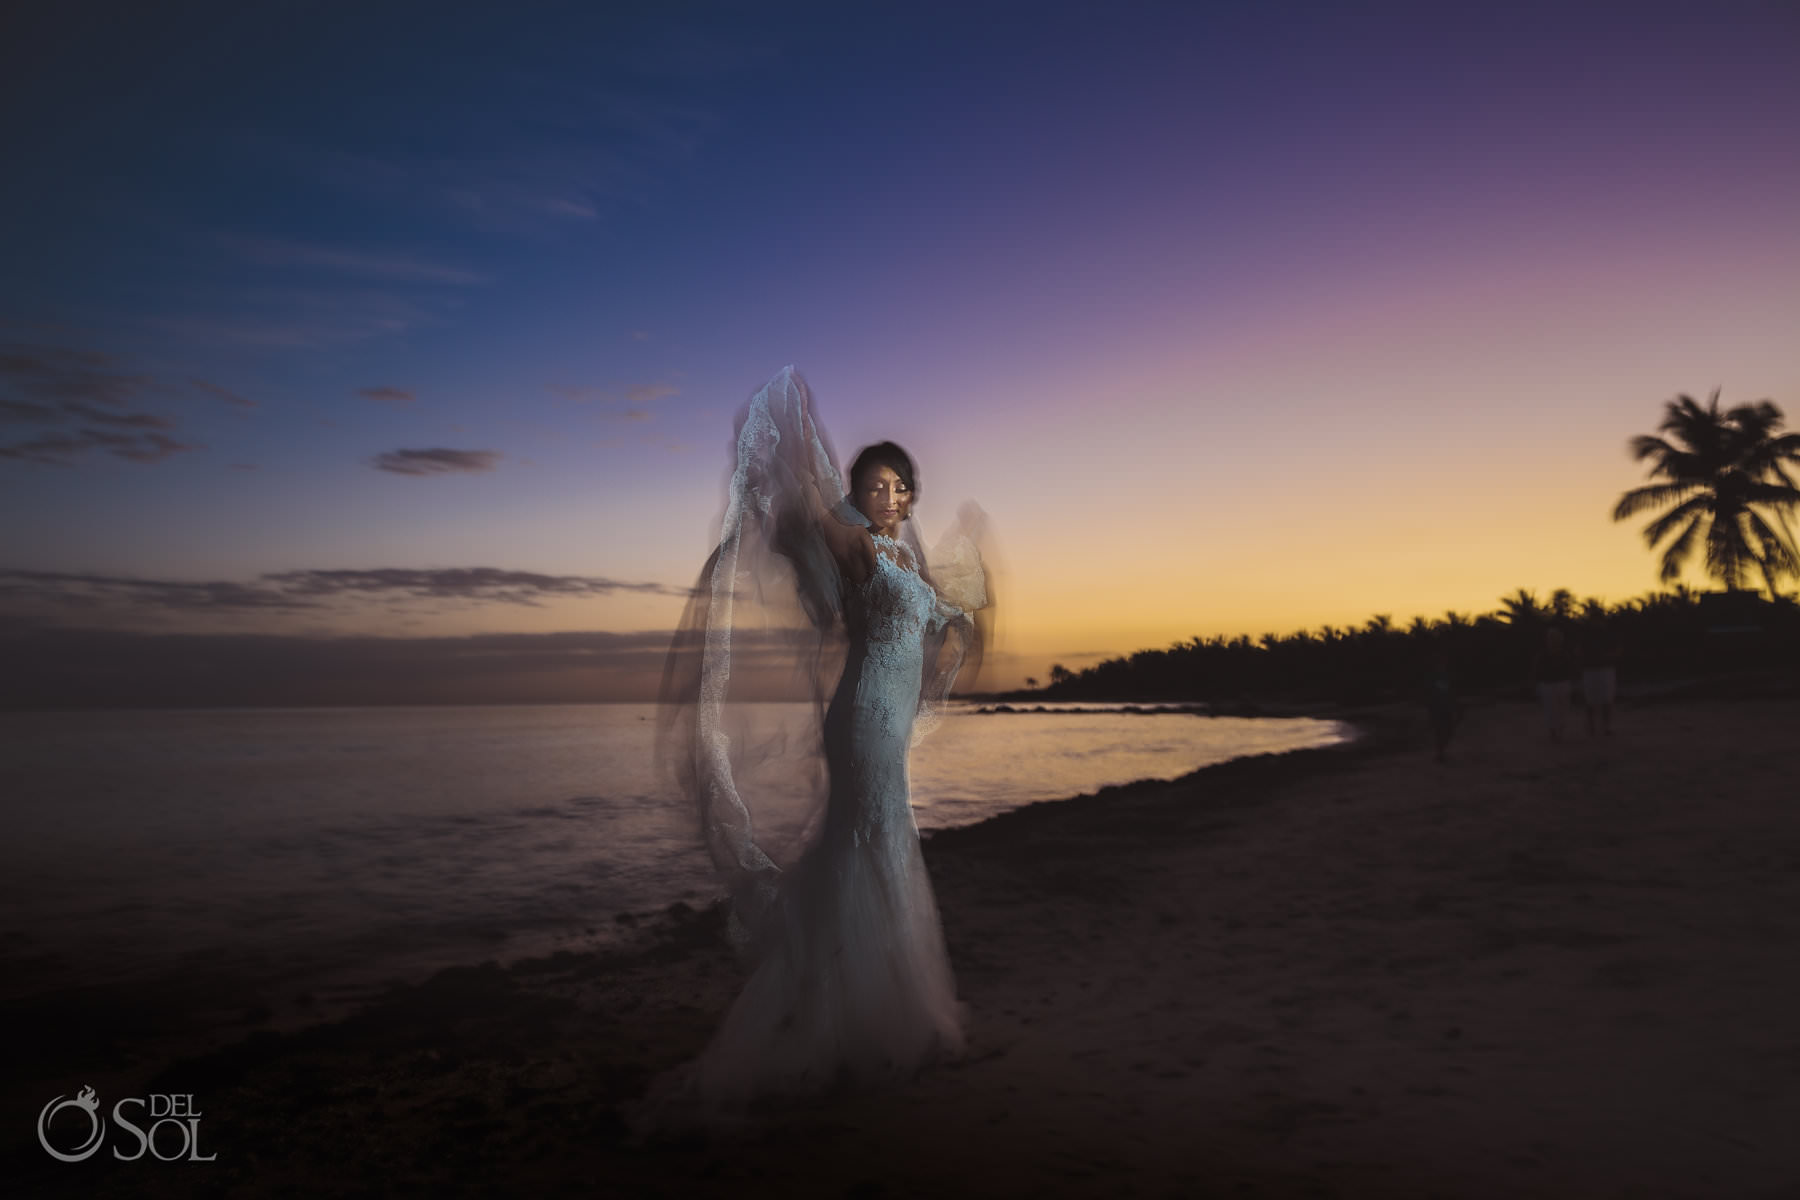 angel wings coconut drink fun photo idea Dreams Tulum Jewish bride